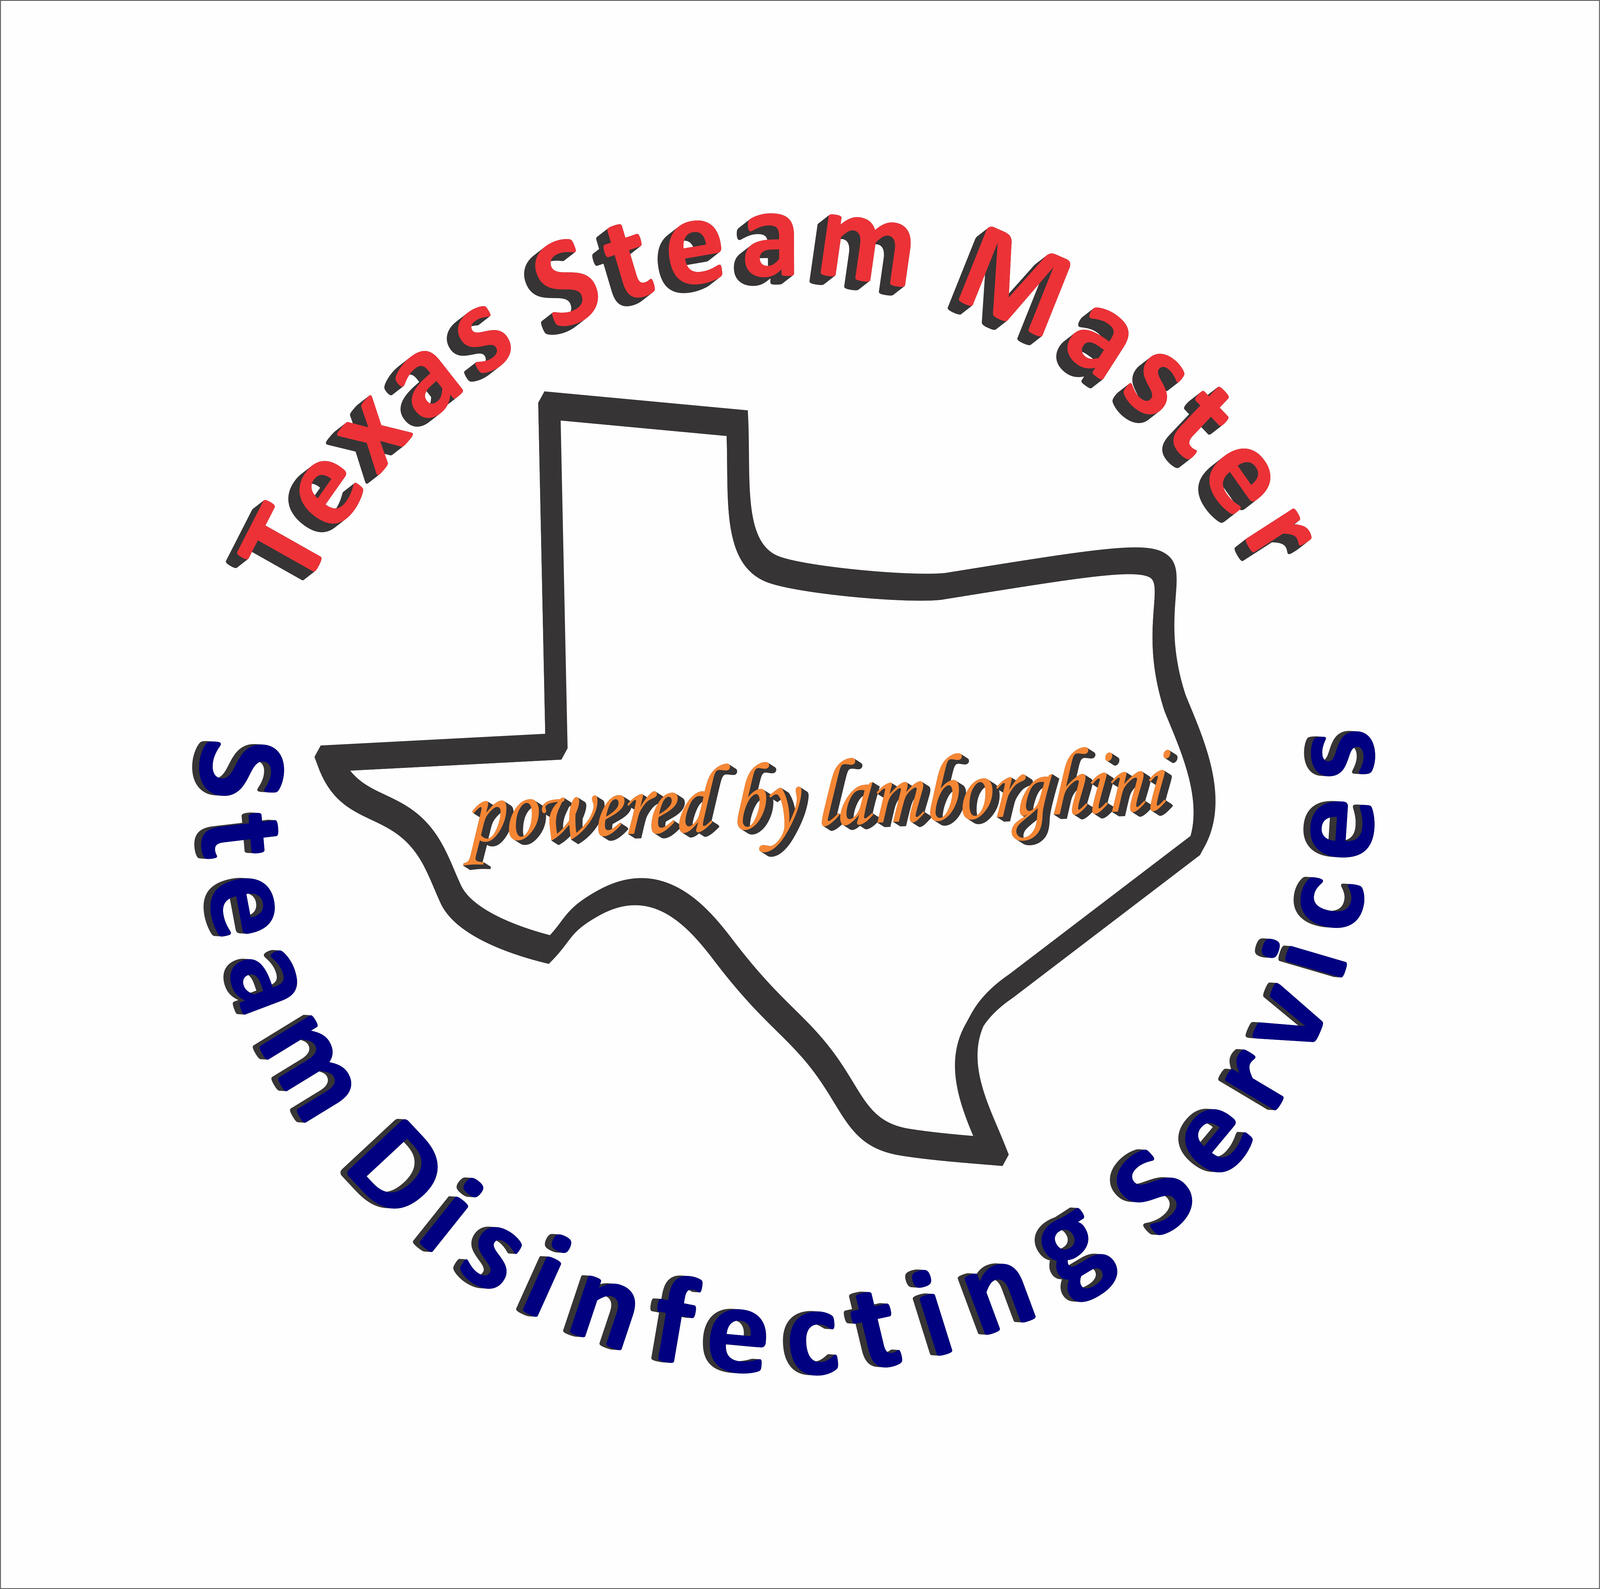 TEXAS STEAM MASTER